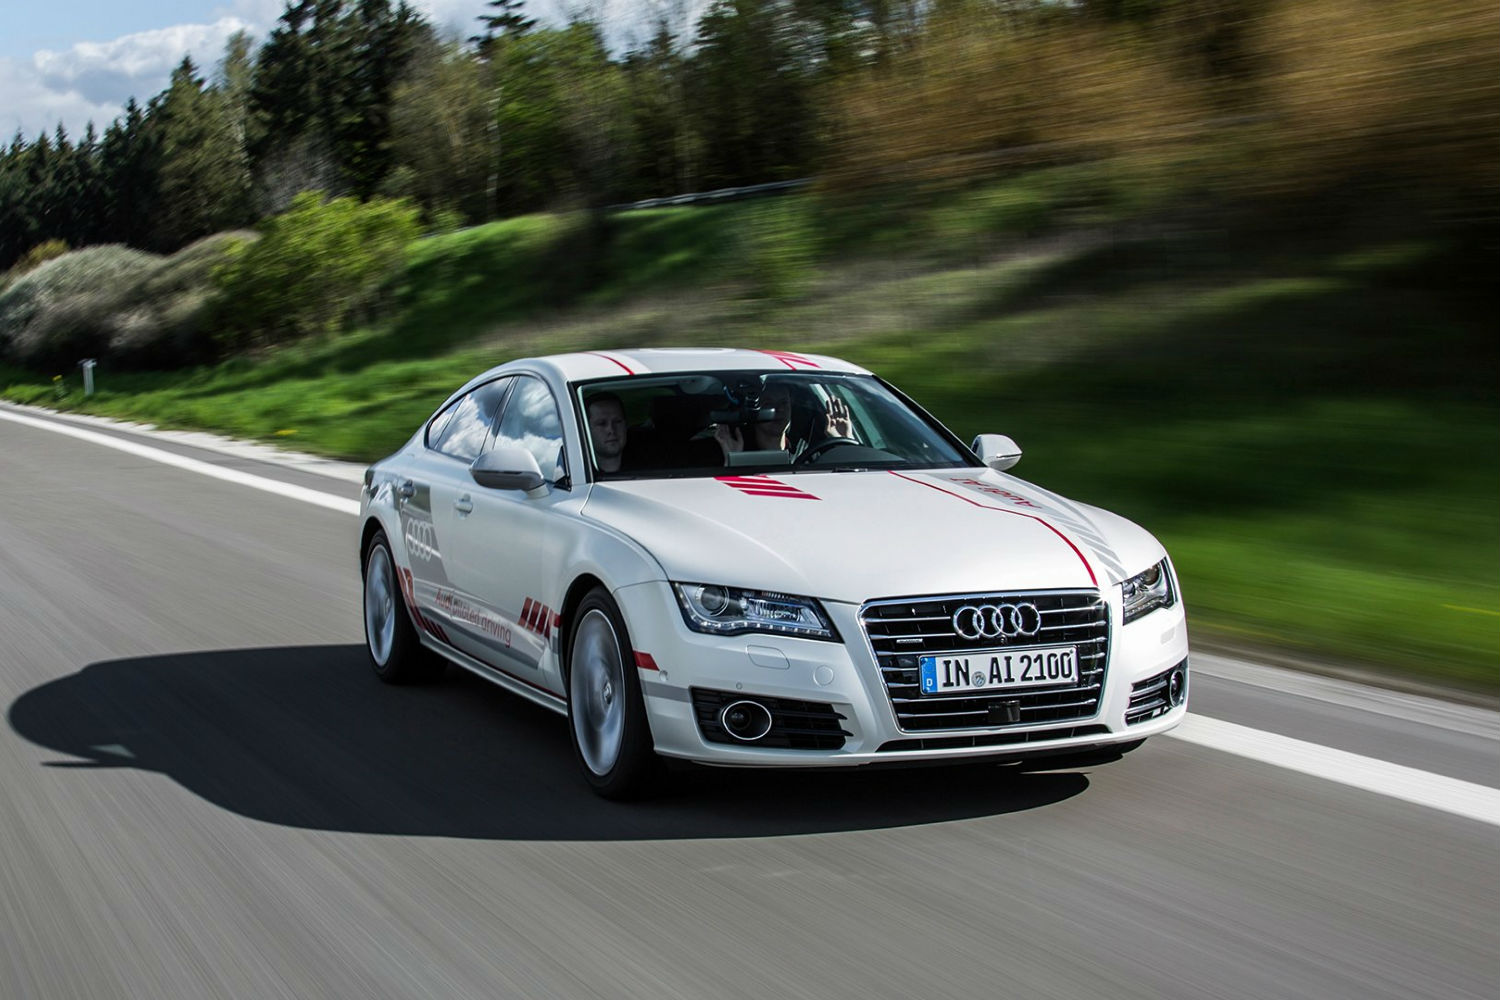 Audi Obtains Permits To Test Selfdriving Cars On New York Roads - Audi car a7